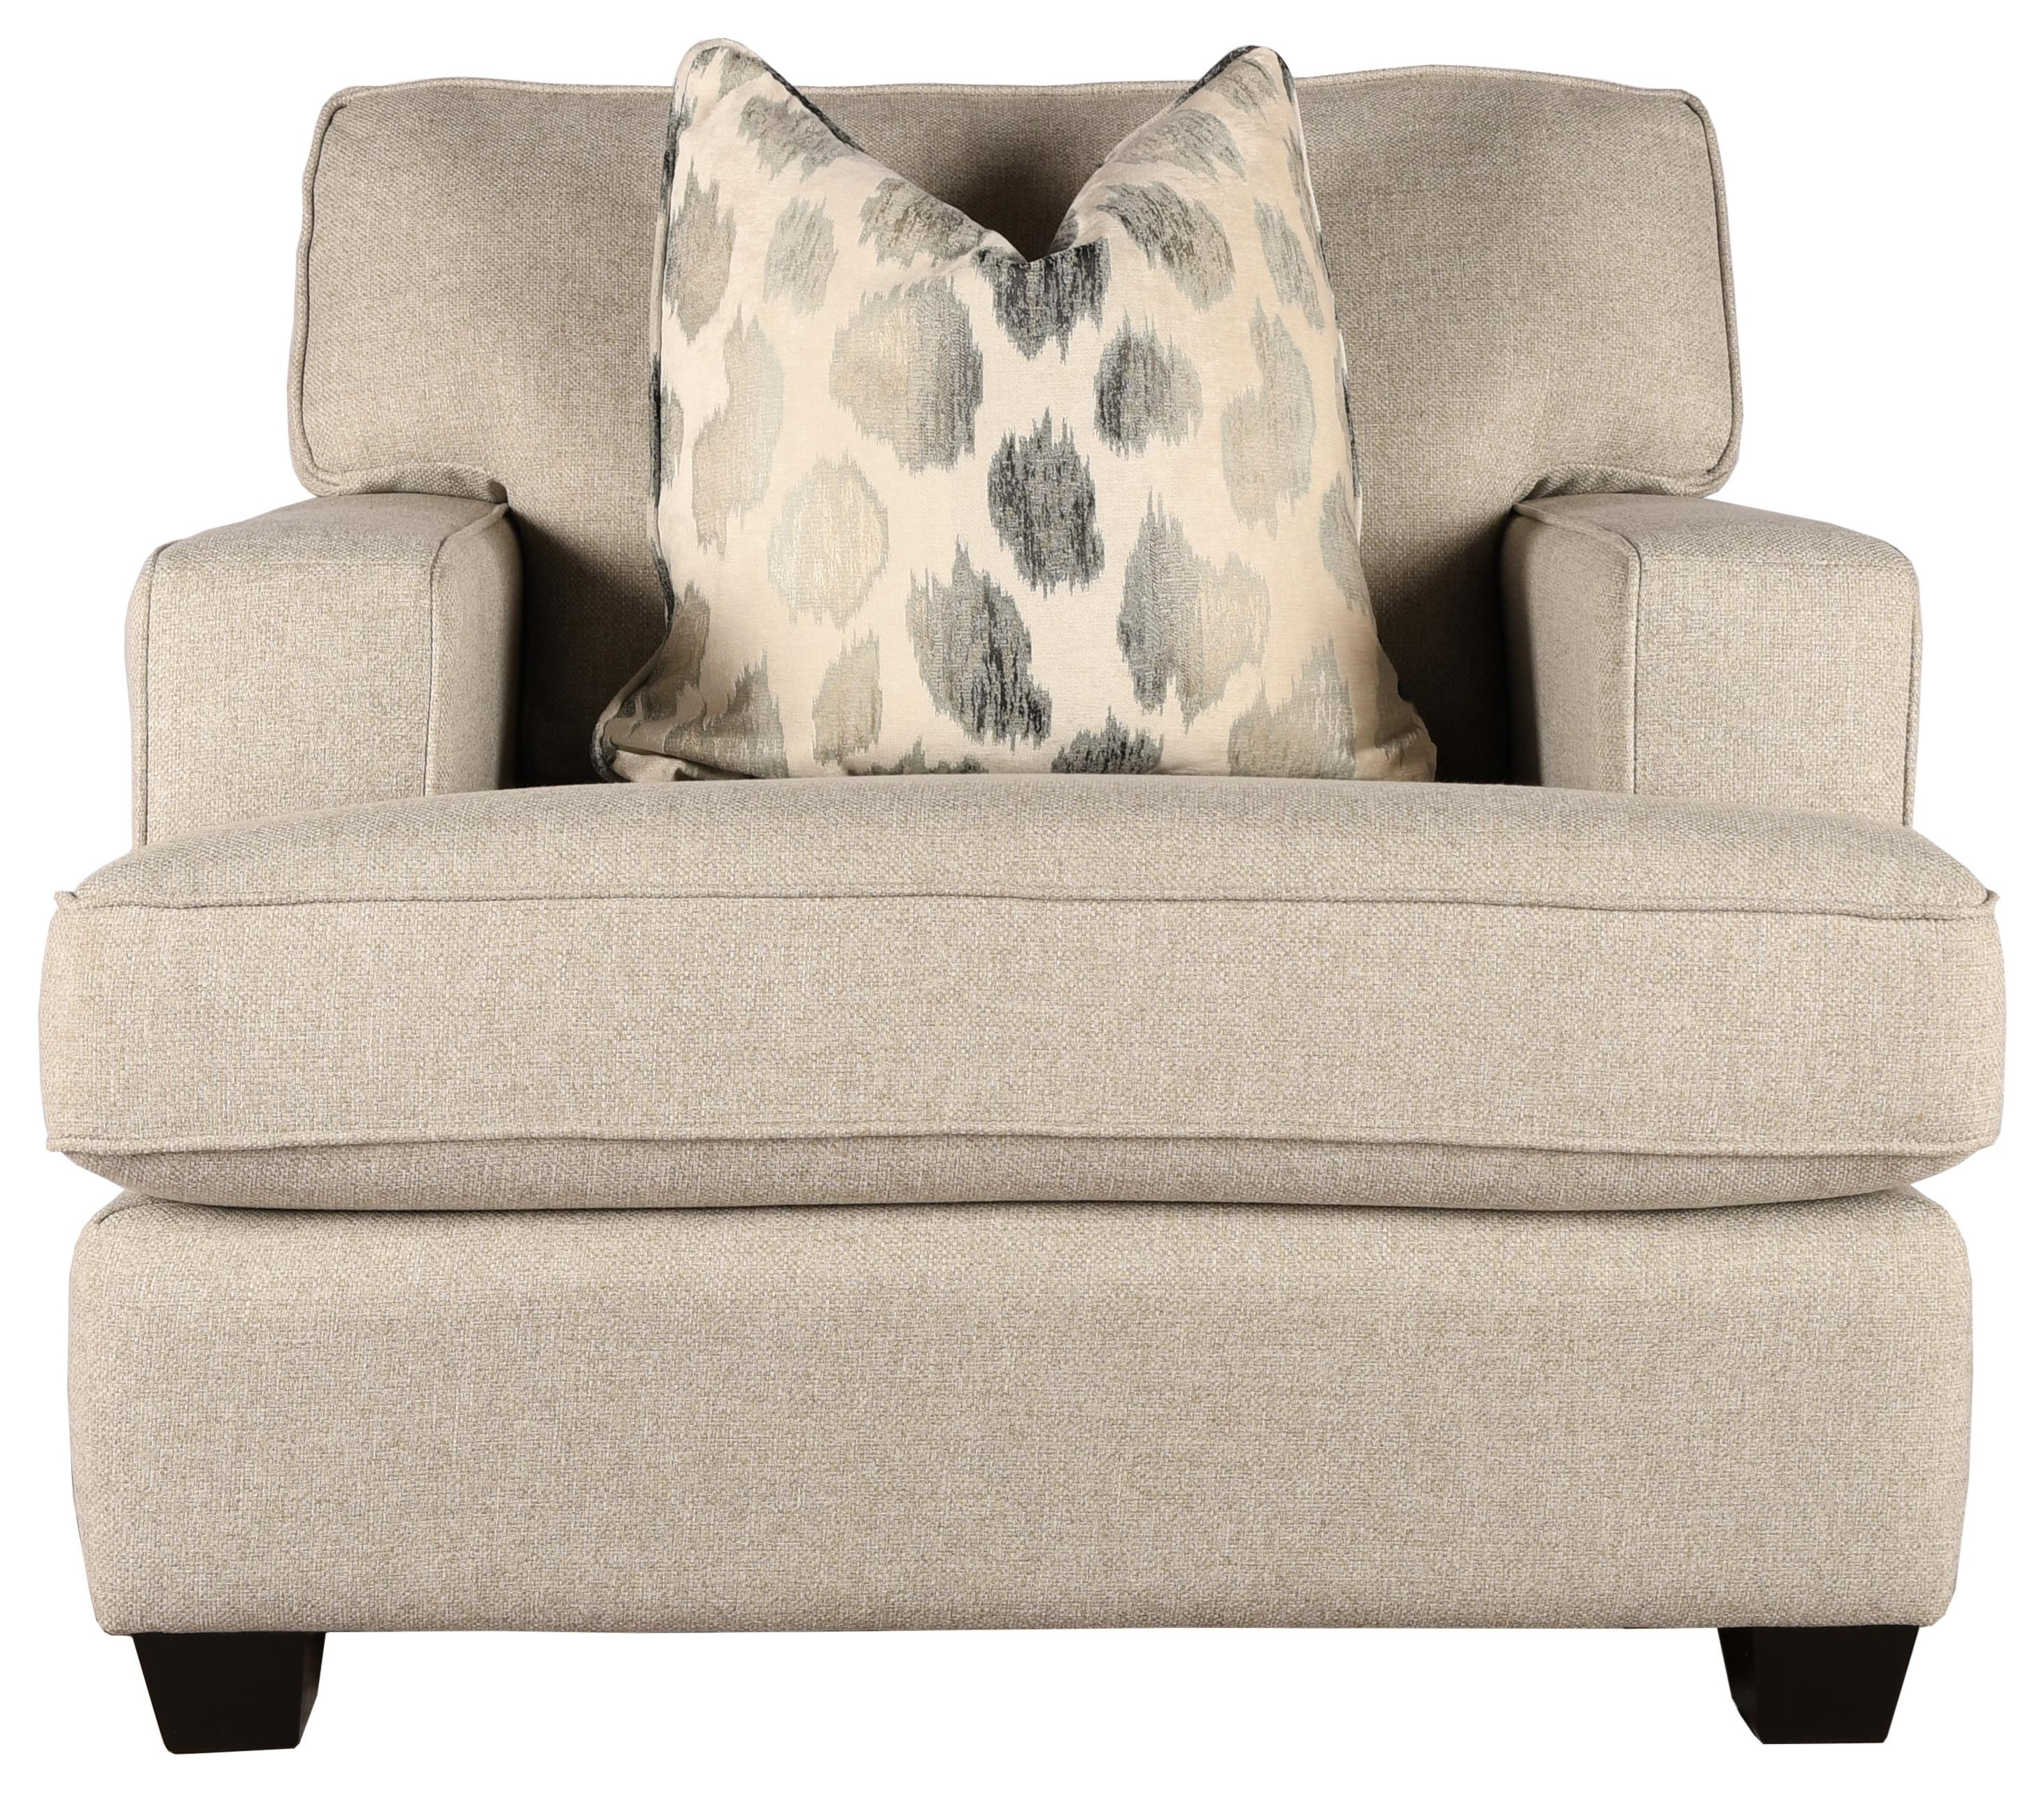 2052 Arm Chair by Taelor Designs at Bennett's Furniture and Mattresses